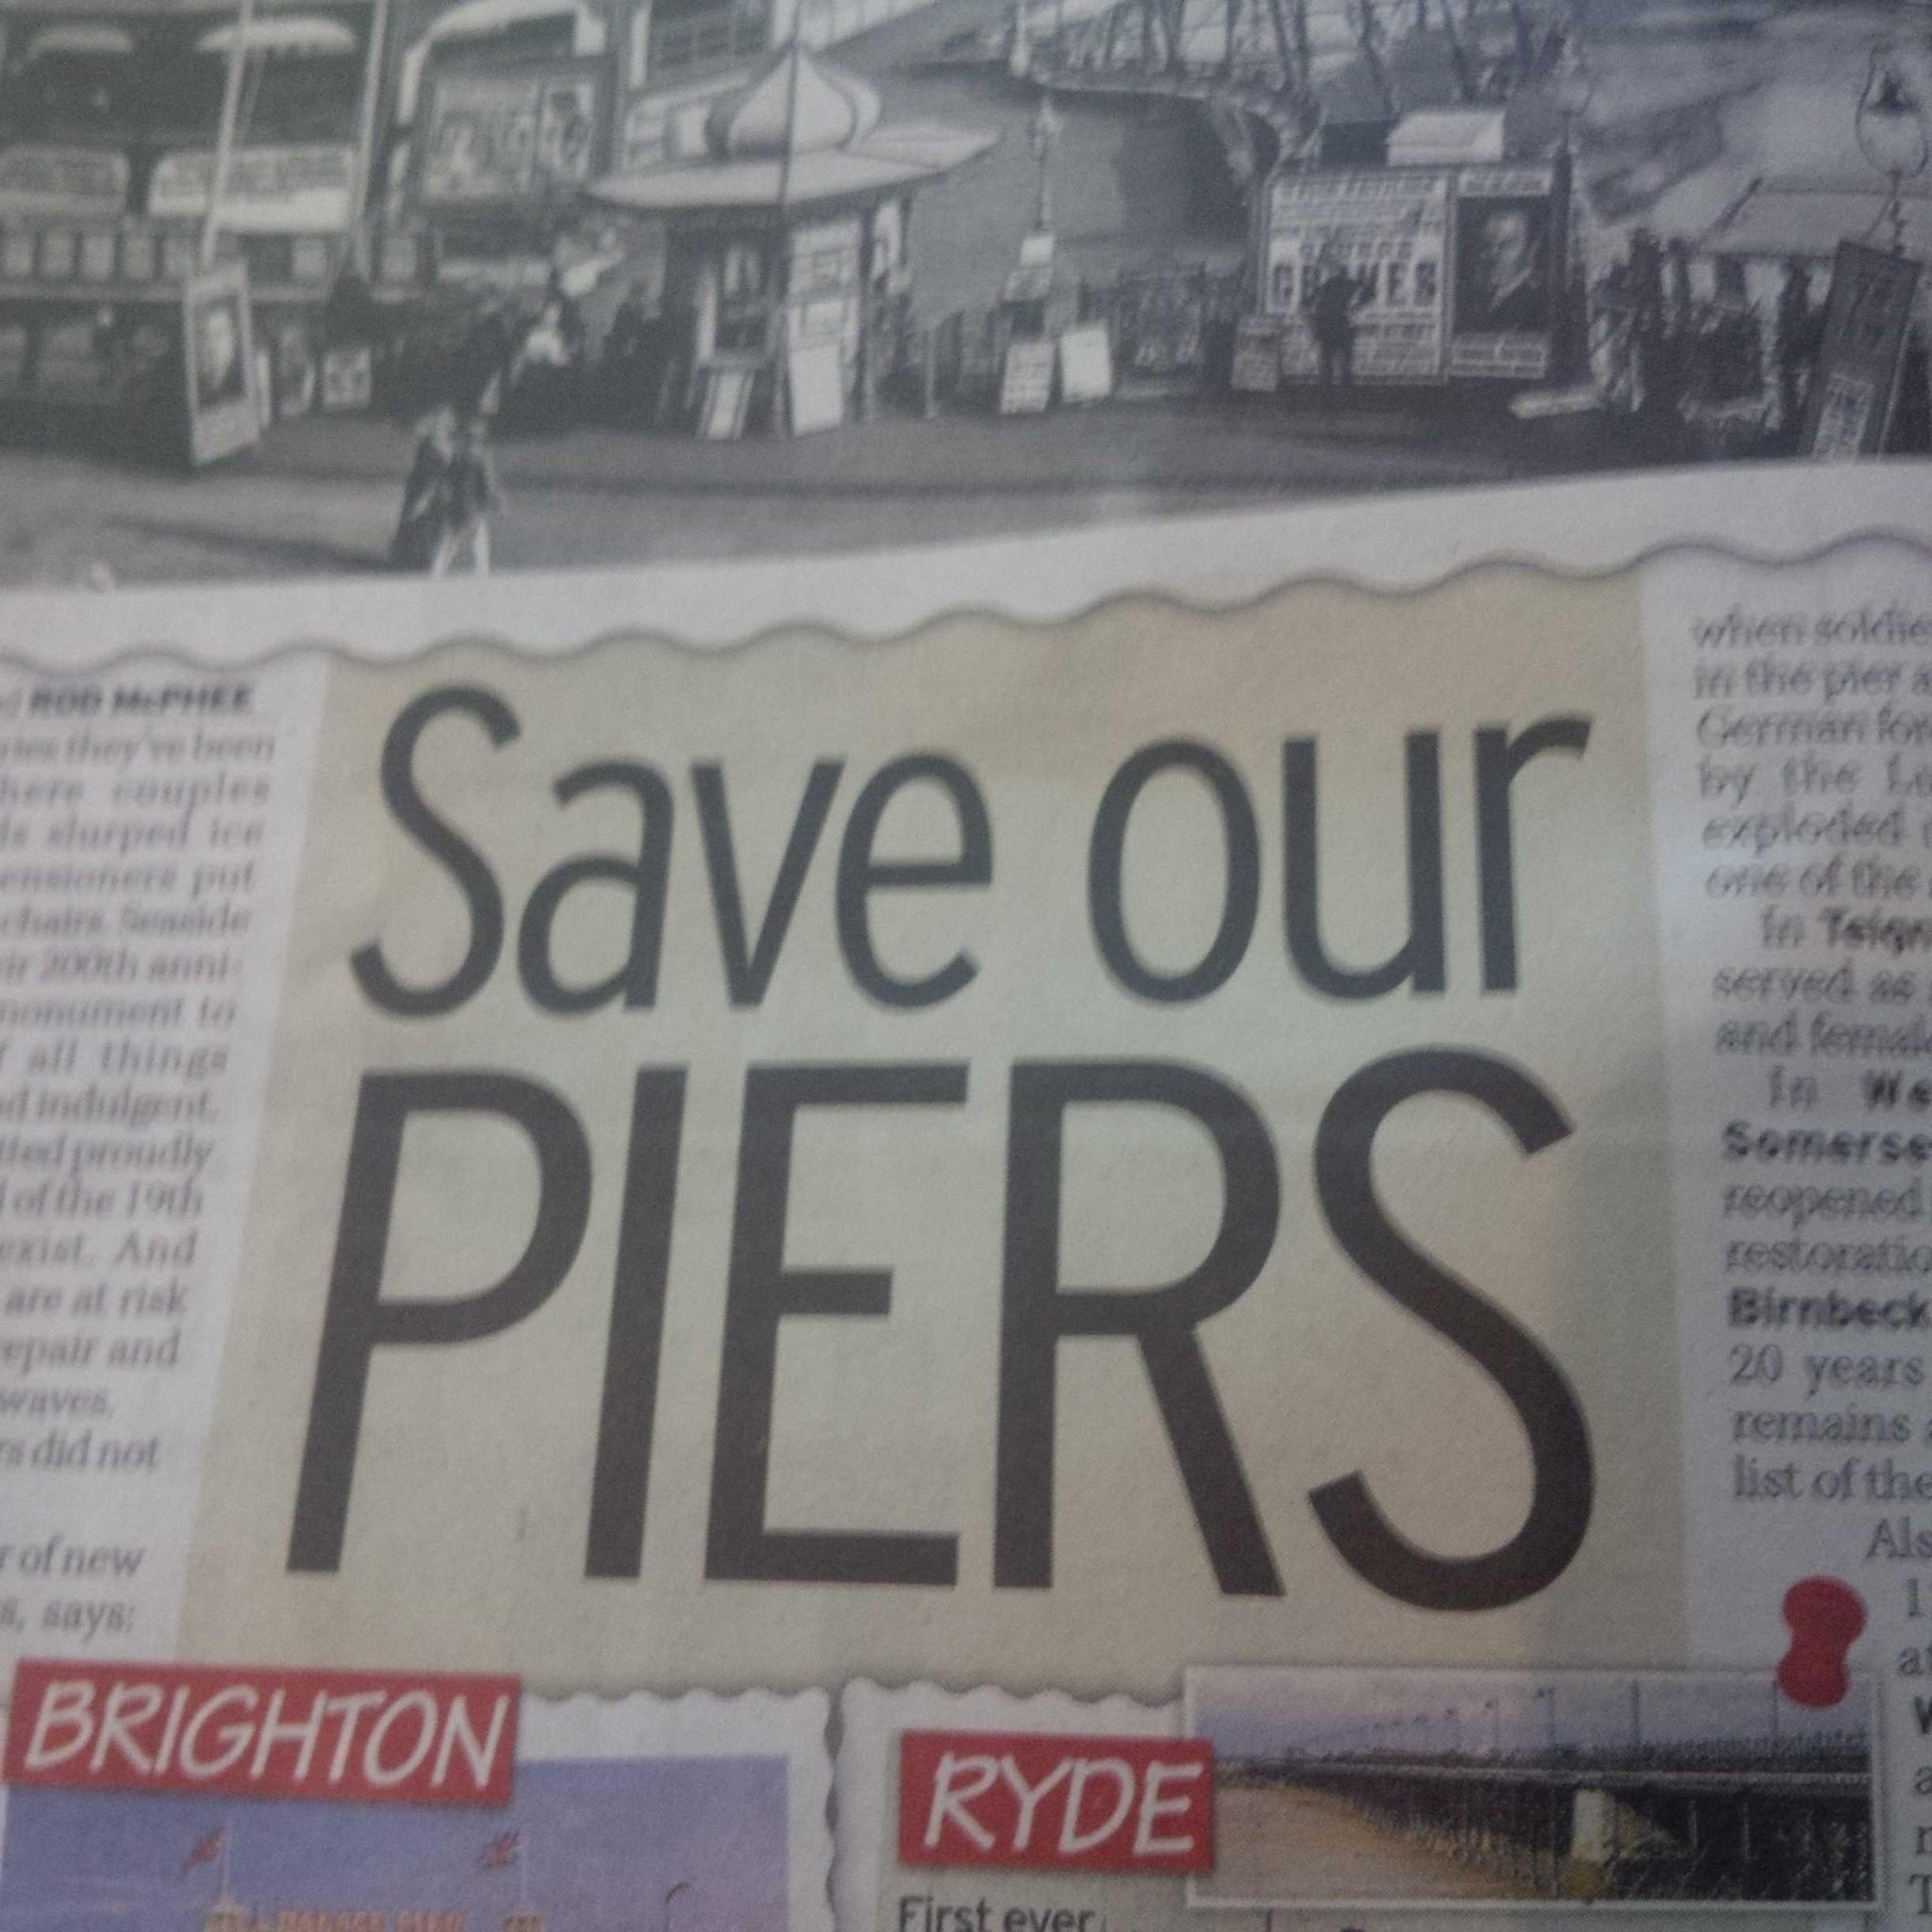 Excellent campaign in the @Mirror today > http://t.co/00FeKD6P54